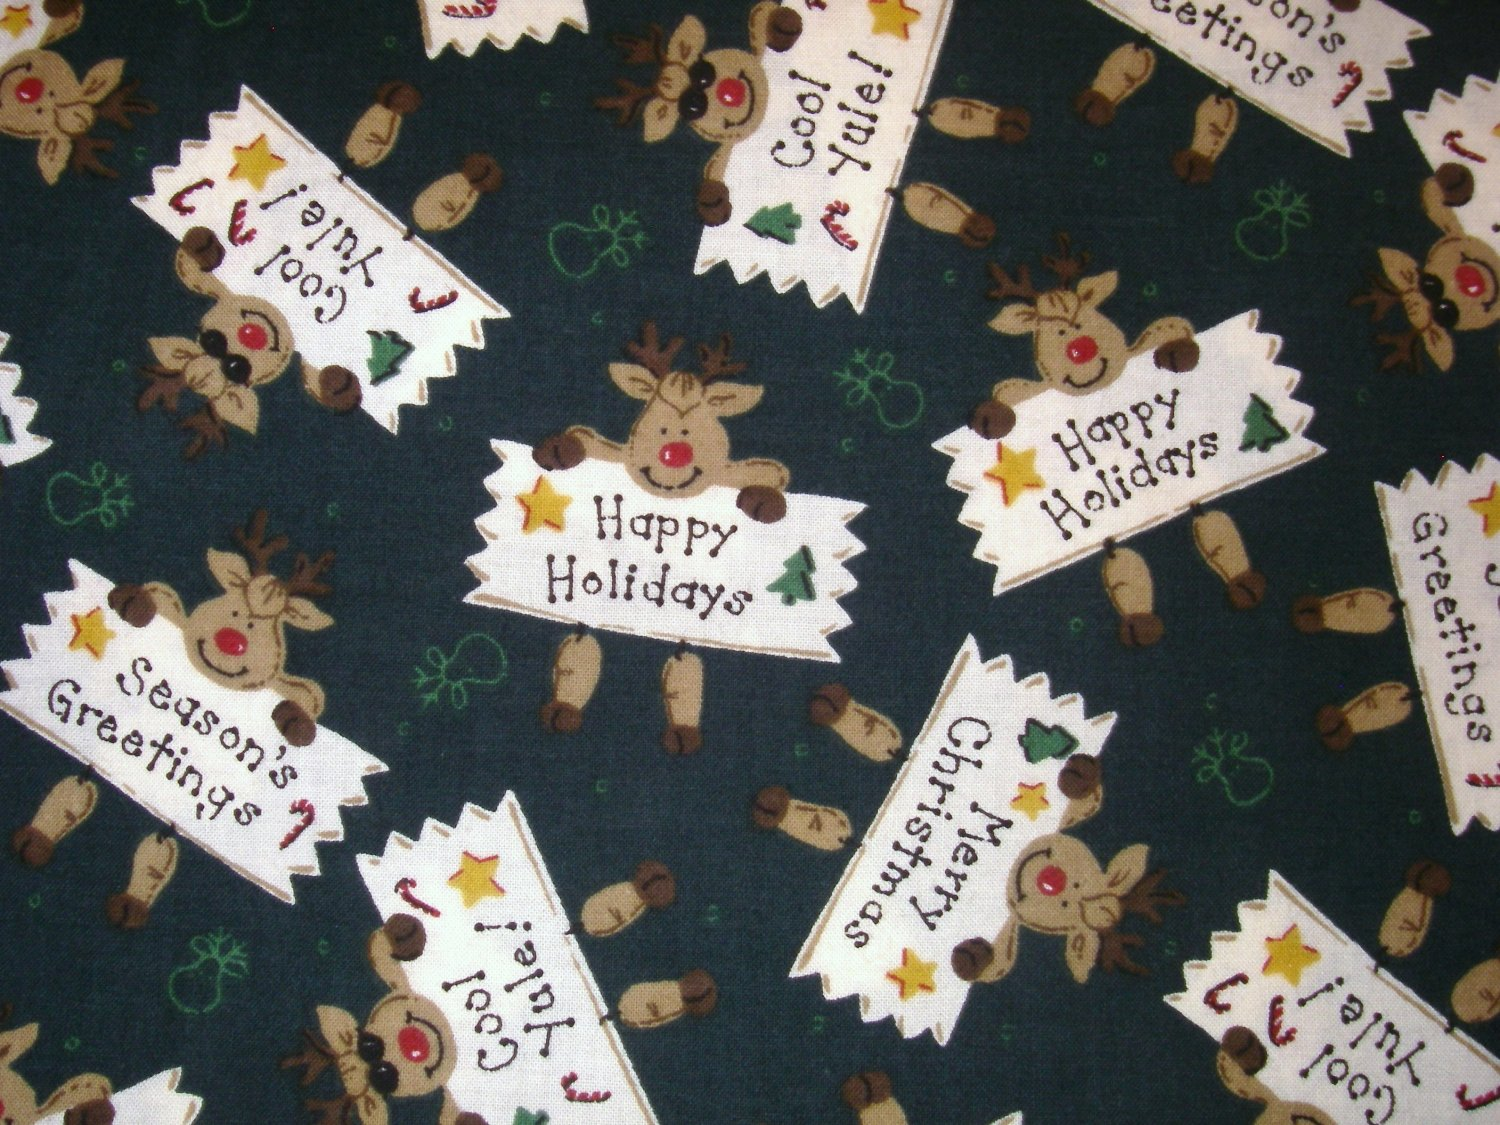 3/4 yard - Dark green fabric with Rudolph reindeer and sayings all over